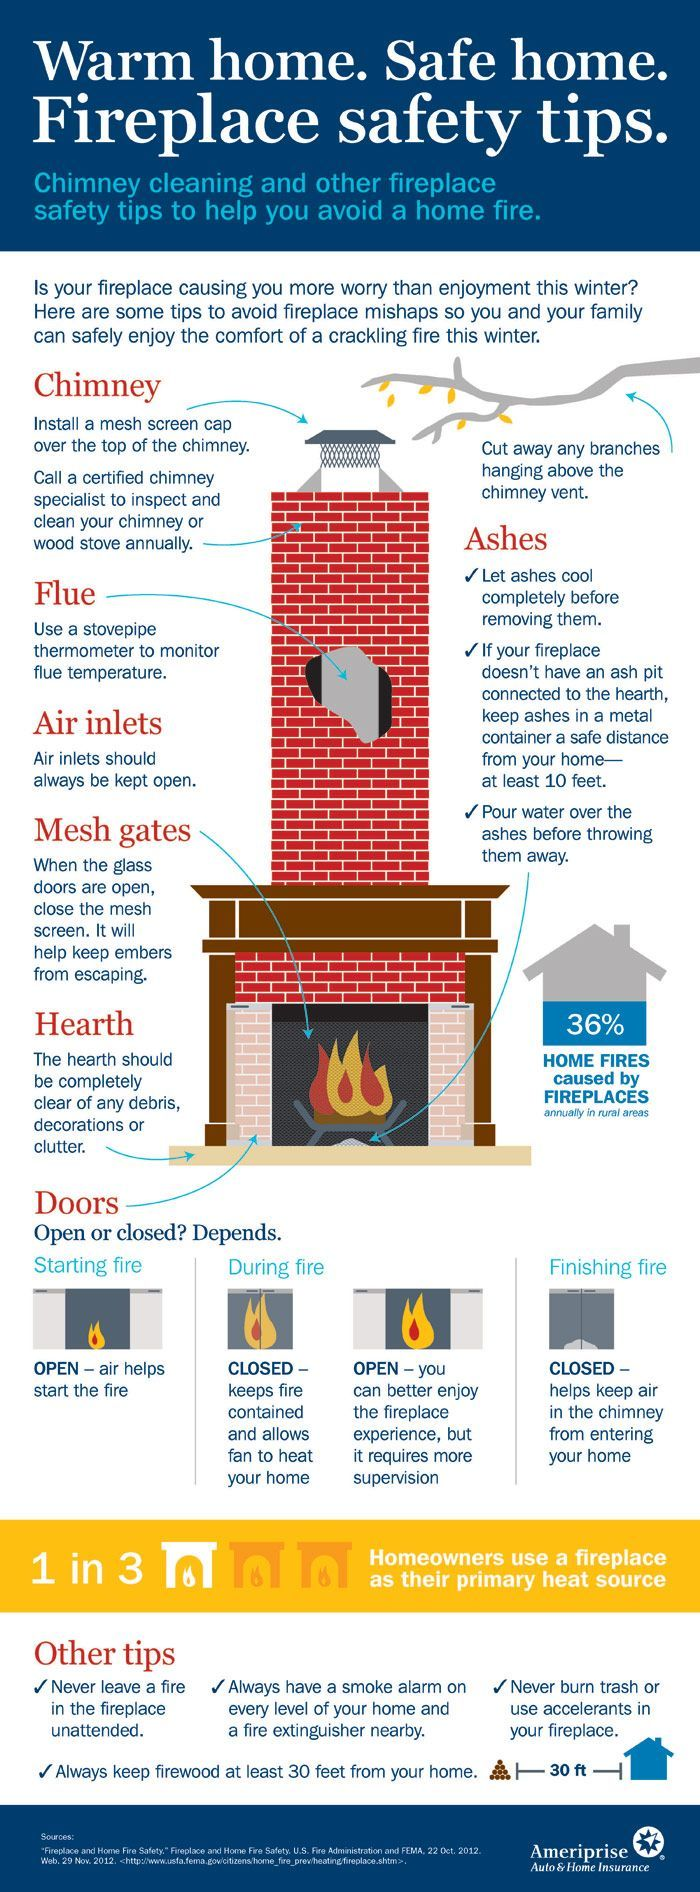 Fireplace Safety Infographic